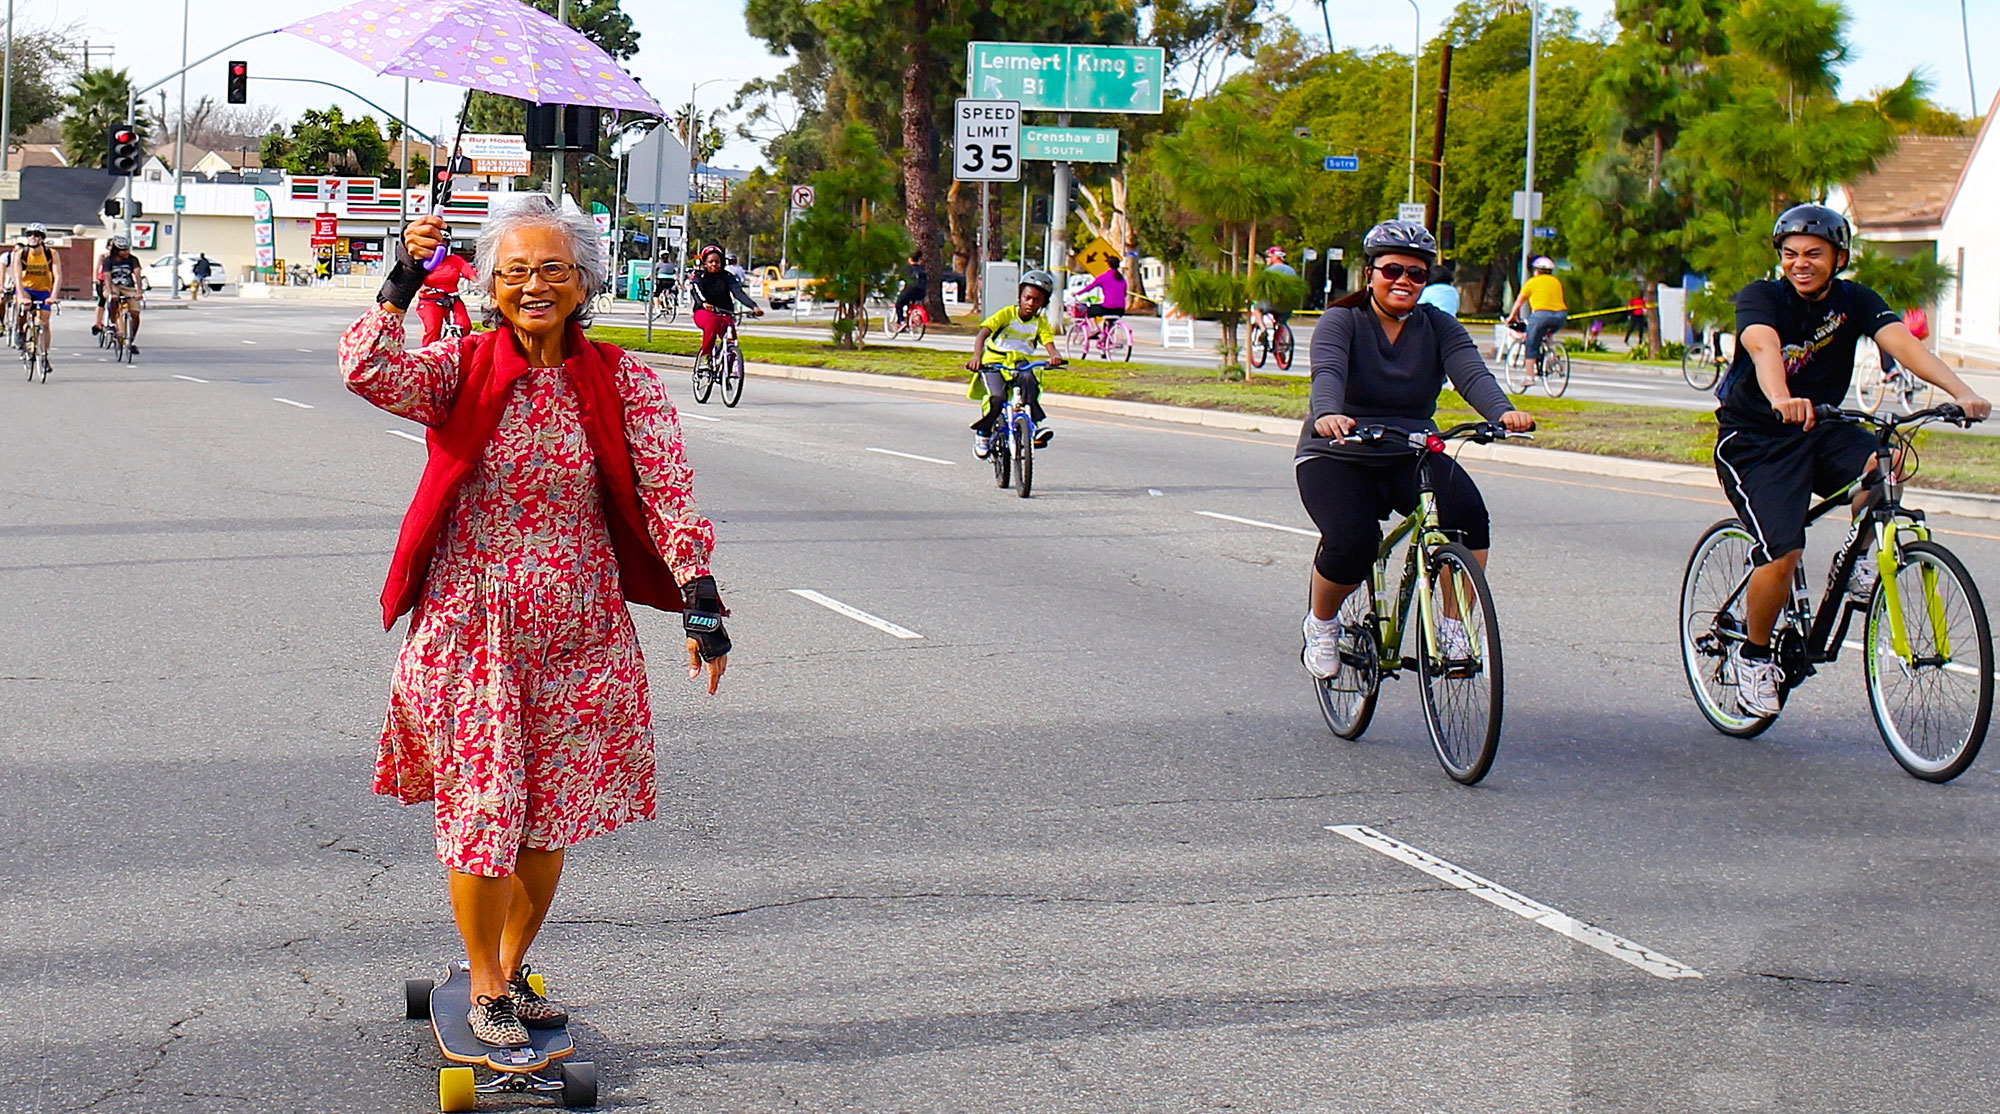 Open Streets- Lady on Skateboard